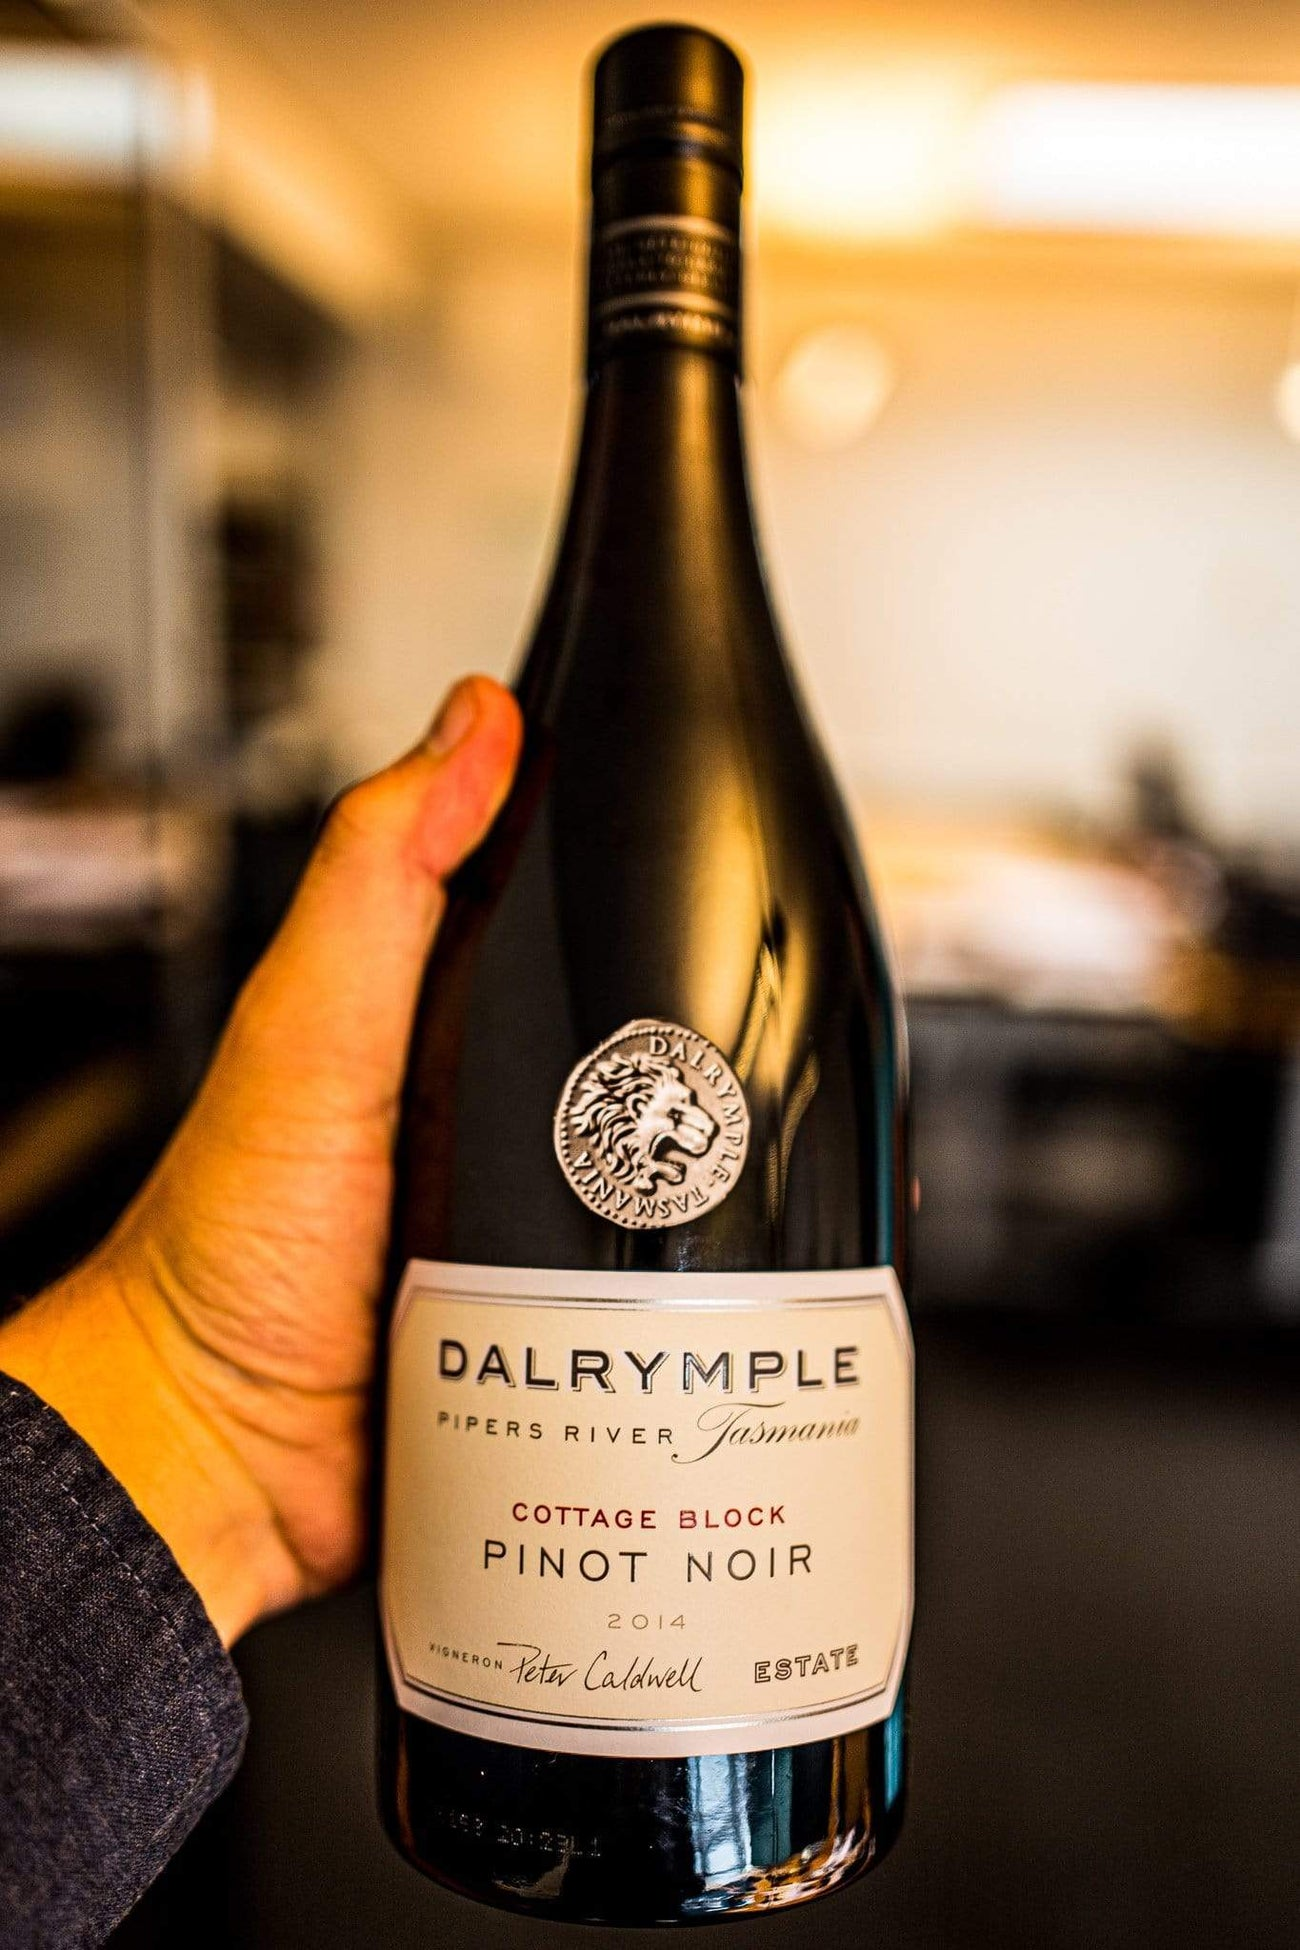 Dalrymple Pipers River Cottage Block Pinot Noir 2014